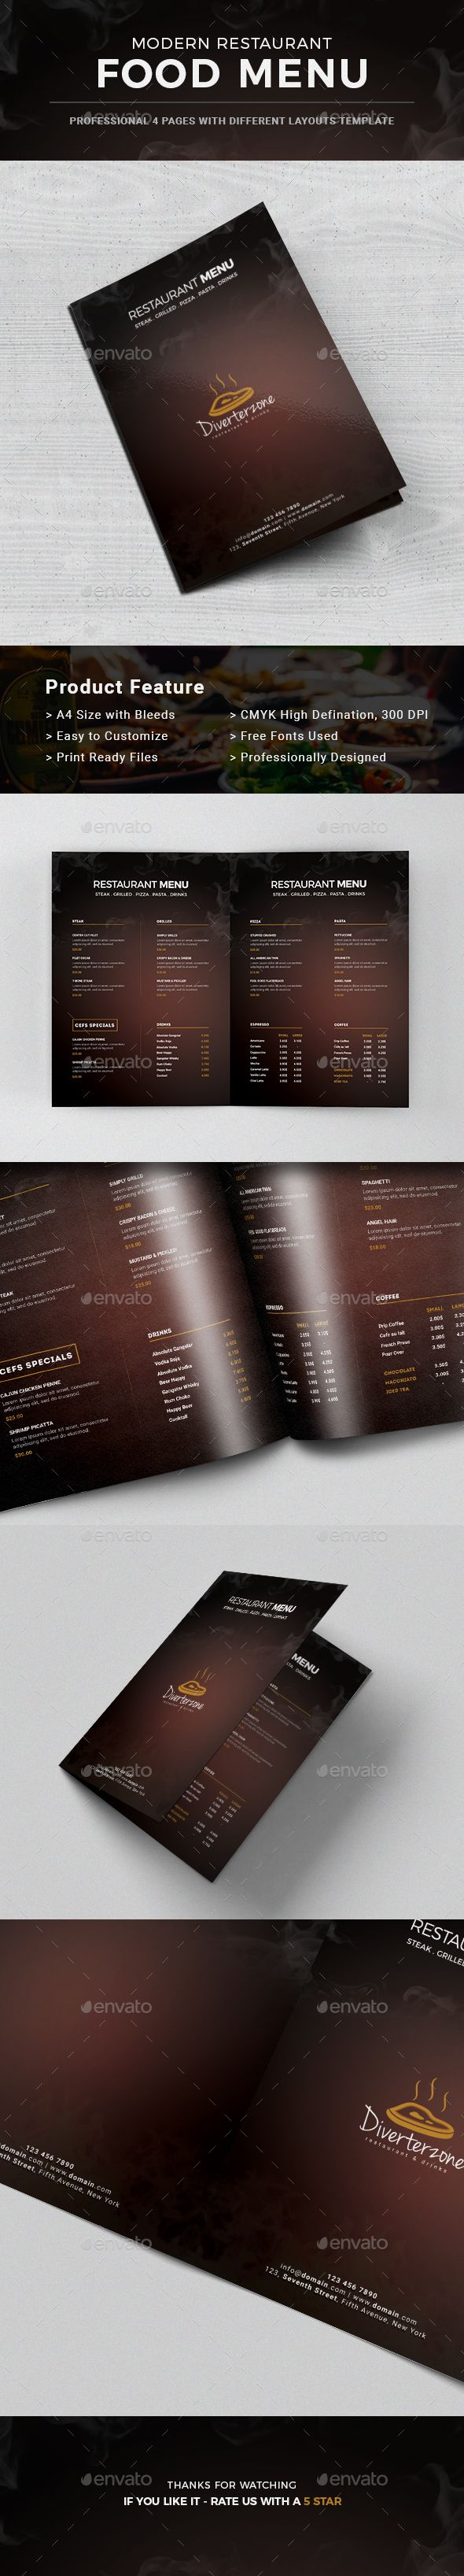 Food Menu u2014 Photoshop PSD food minimal